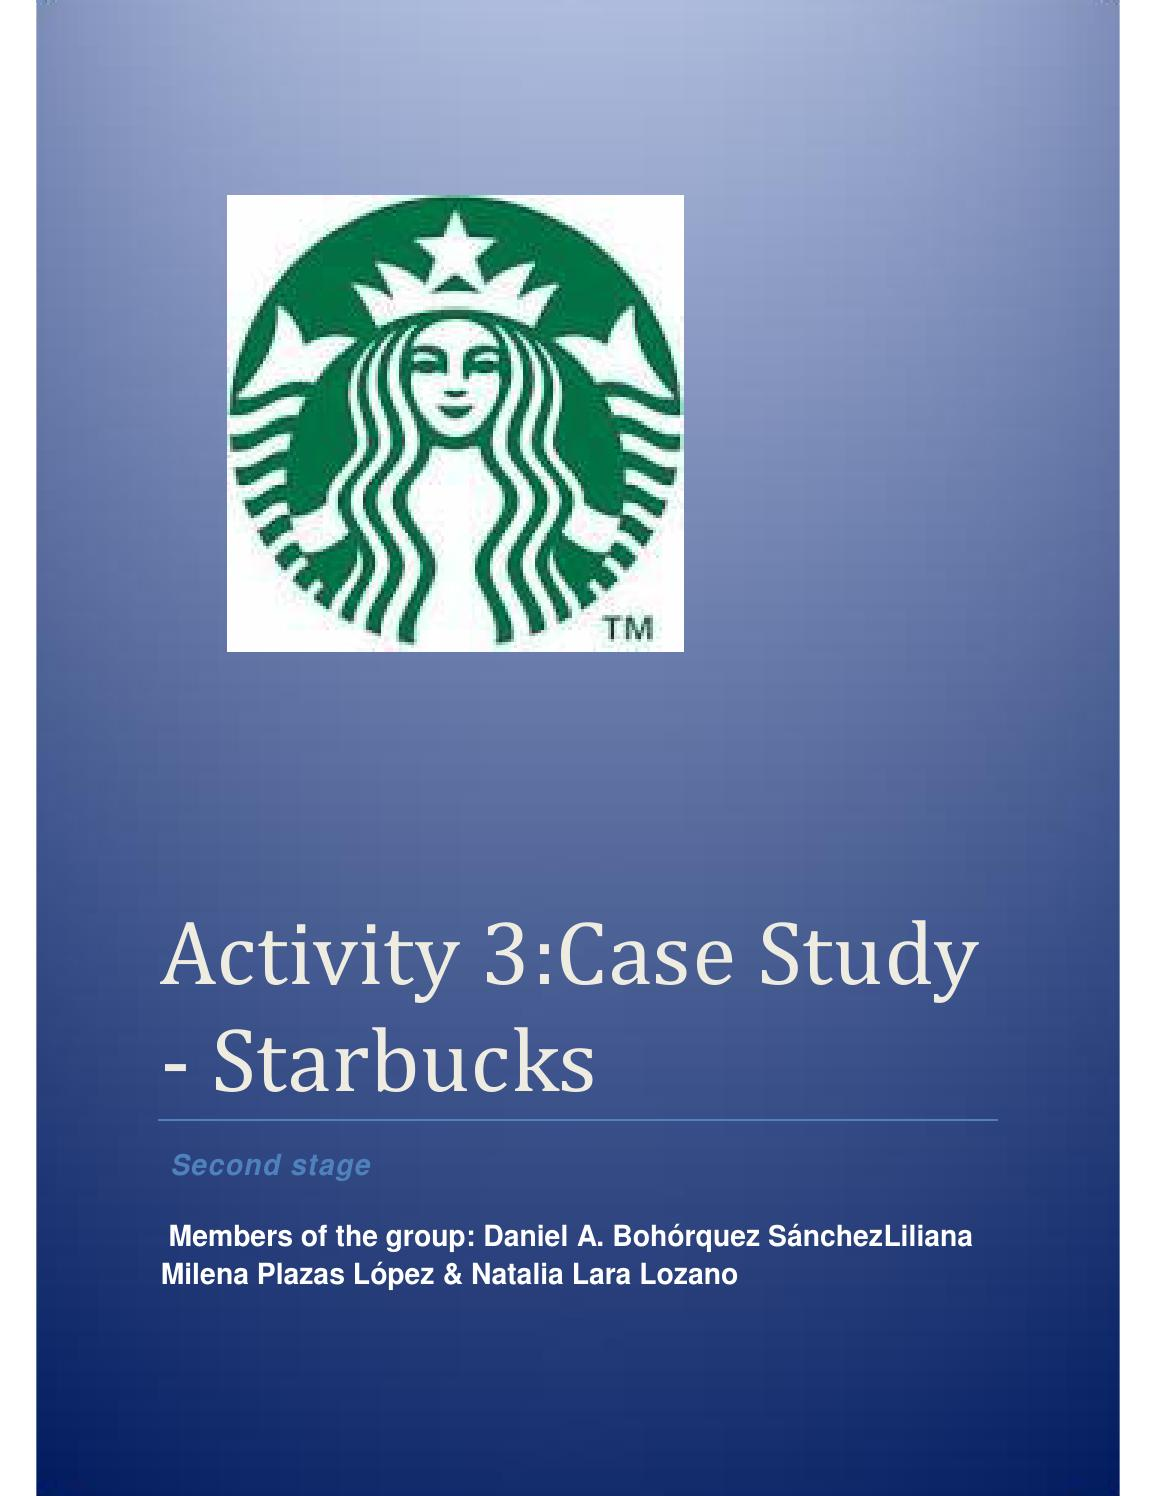 starbucks case study Learn more about the starbucks corporation by reading this case study on motivation and teamwork.